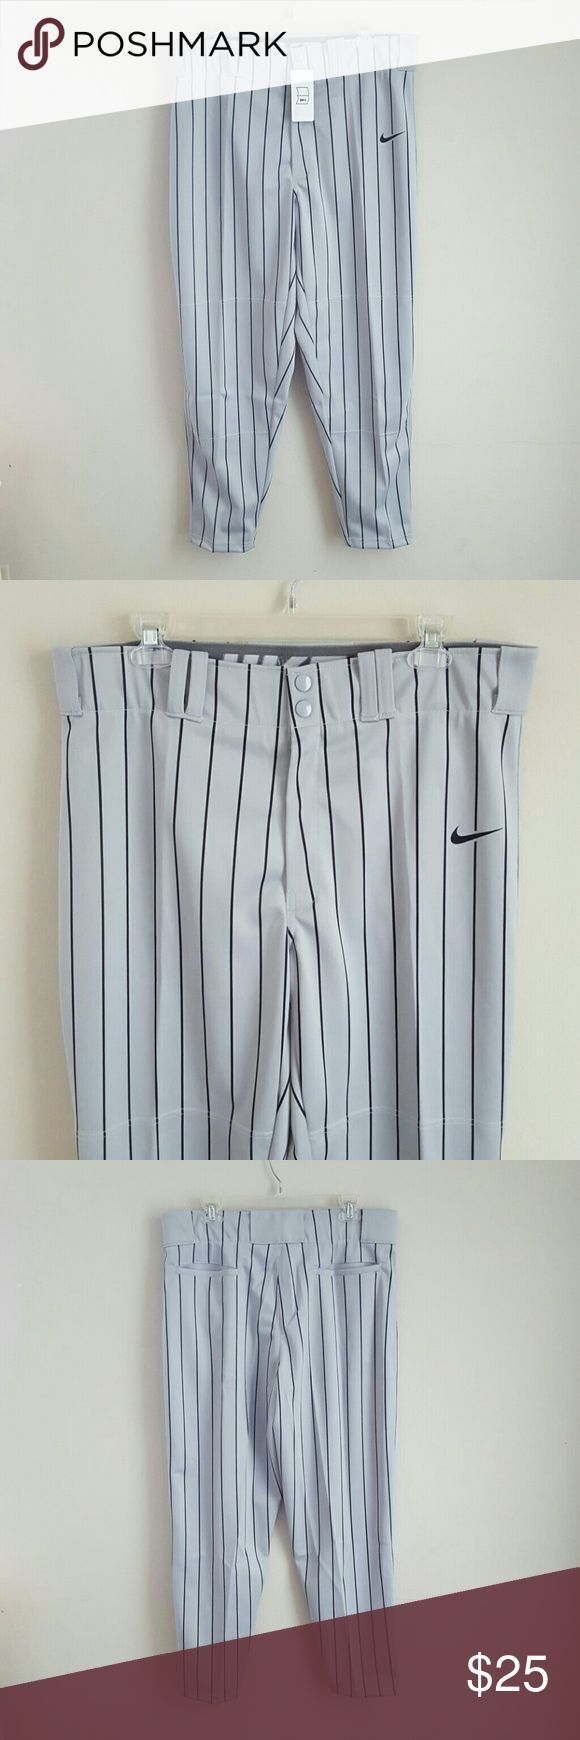 """NWT Nike Baseball Pants New with tags Nike baseball pants, gray with black vertical stripes. Size Large. These pants are a Nike """"sample"""", they are nwt (I removed from plastic retail  bag to take photos) and I see no issues/flaws/damage on them. Nike Pants Sweatpants & Joggers"""